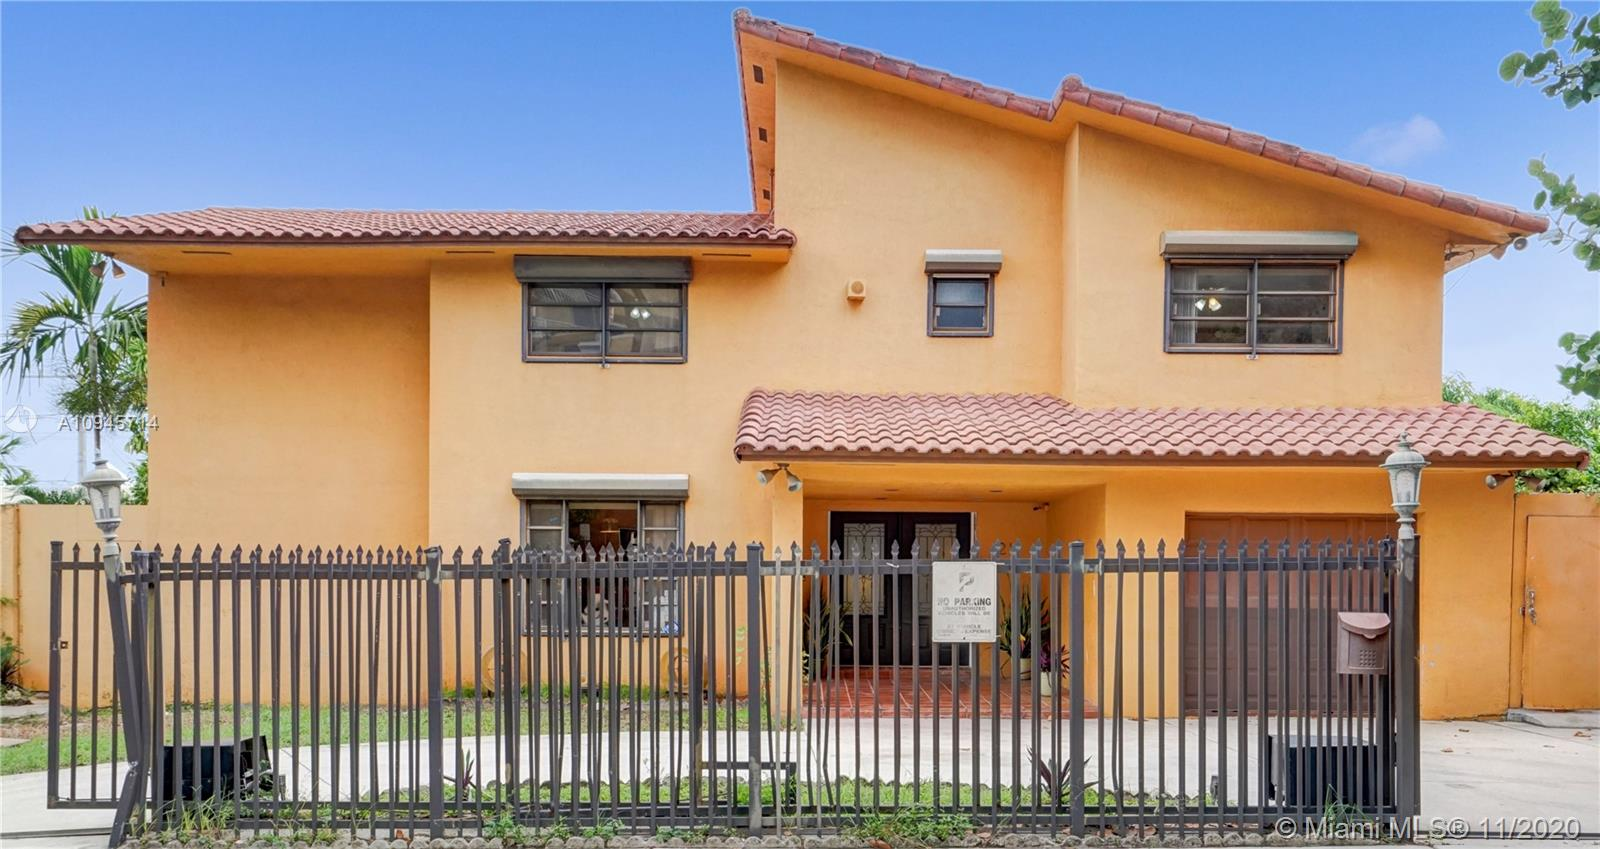 Details for 211 41st Ave, Miami, FL 33134